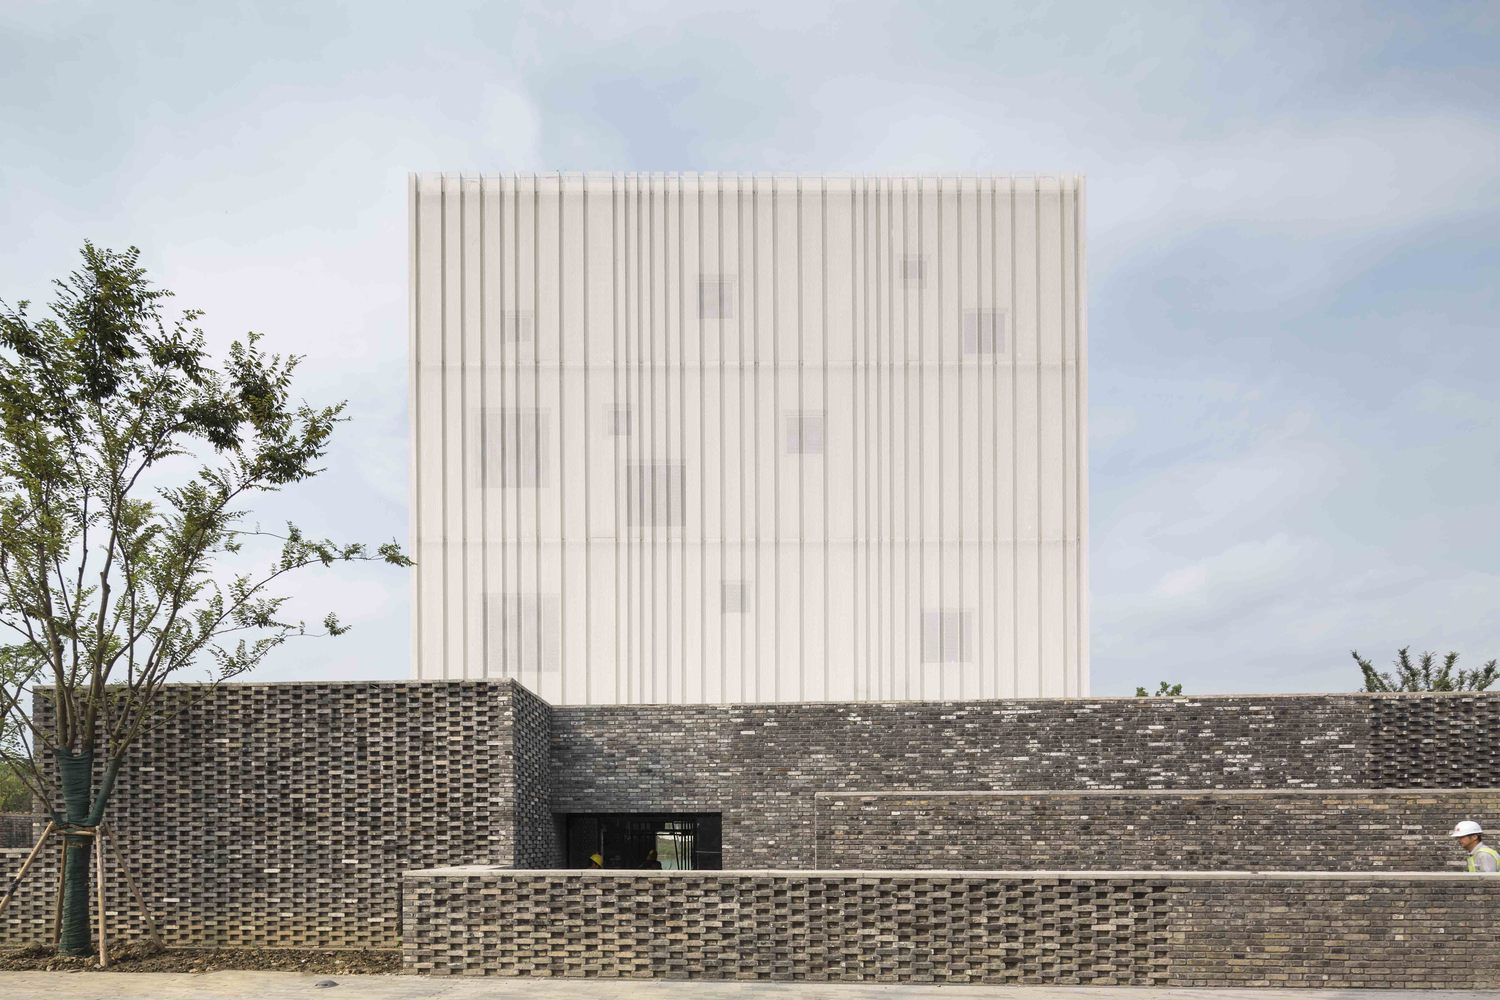 Neri hu 39 s suzhou chapel features a floating volume dressed in a metal veil inspirationist - Architecturen volumes ...